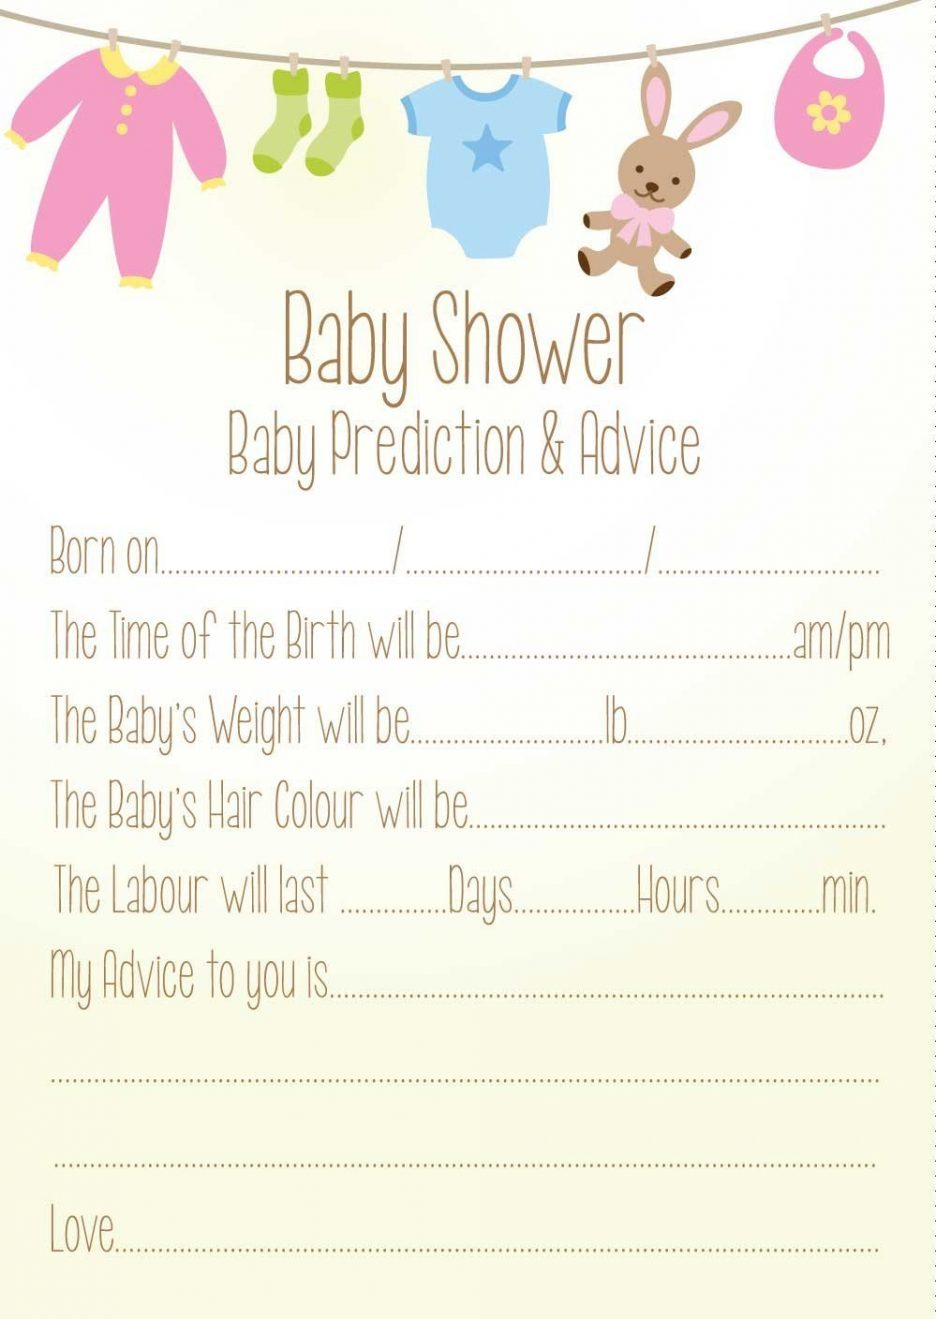 Full Size of Baby Shower:49+ Prime Baby Shower Card Message Photo Concepts Baby Shower Card Message State Custom Baby Shower Card Message You Can Write Baby Shower